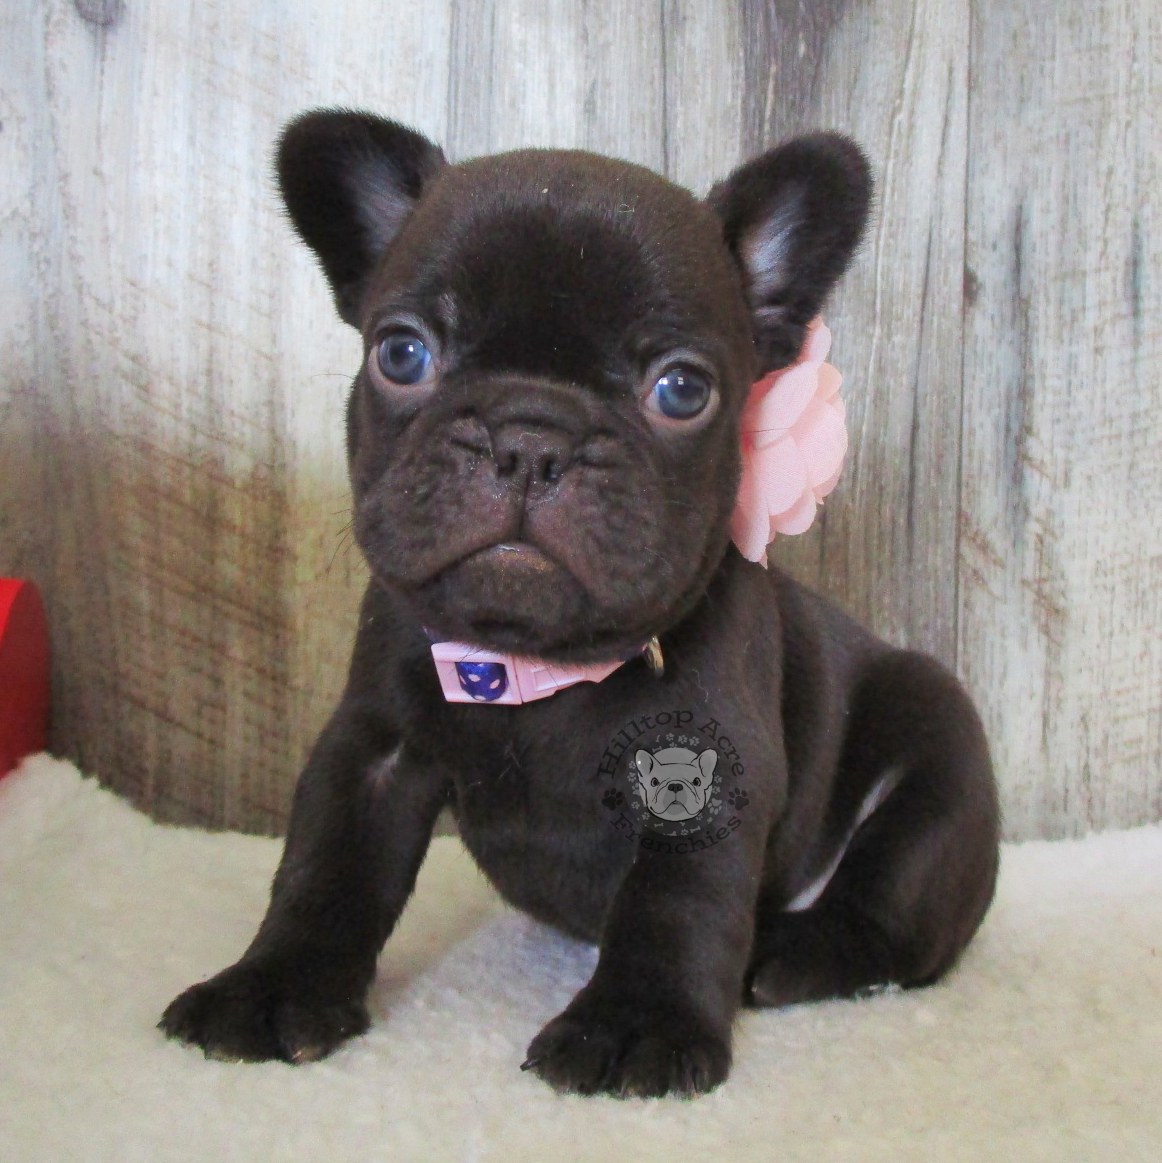 French Bulldog Puppies: Blue, Blue & Tan Puppies for Sale in